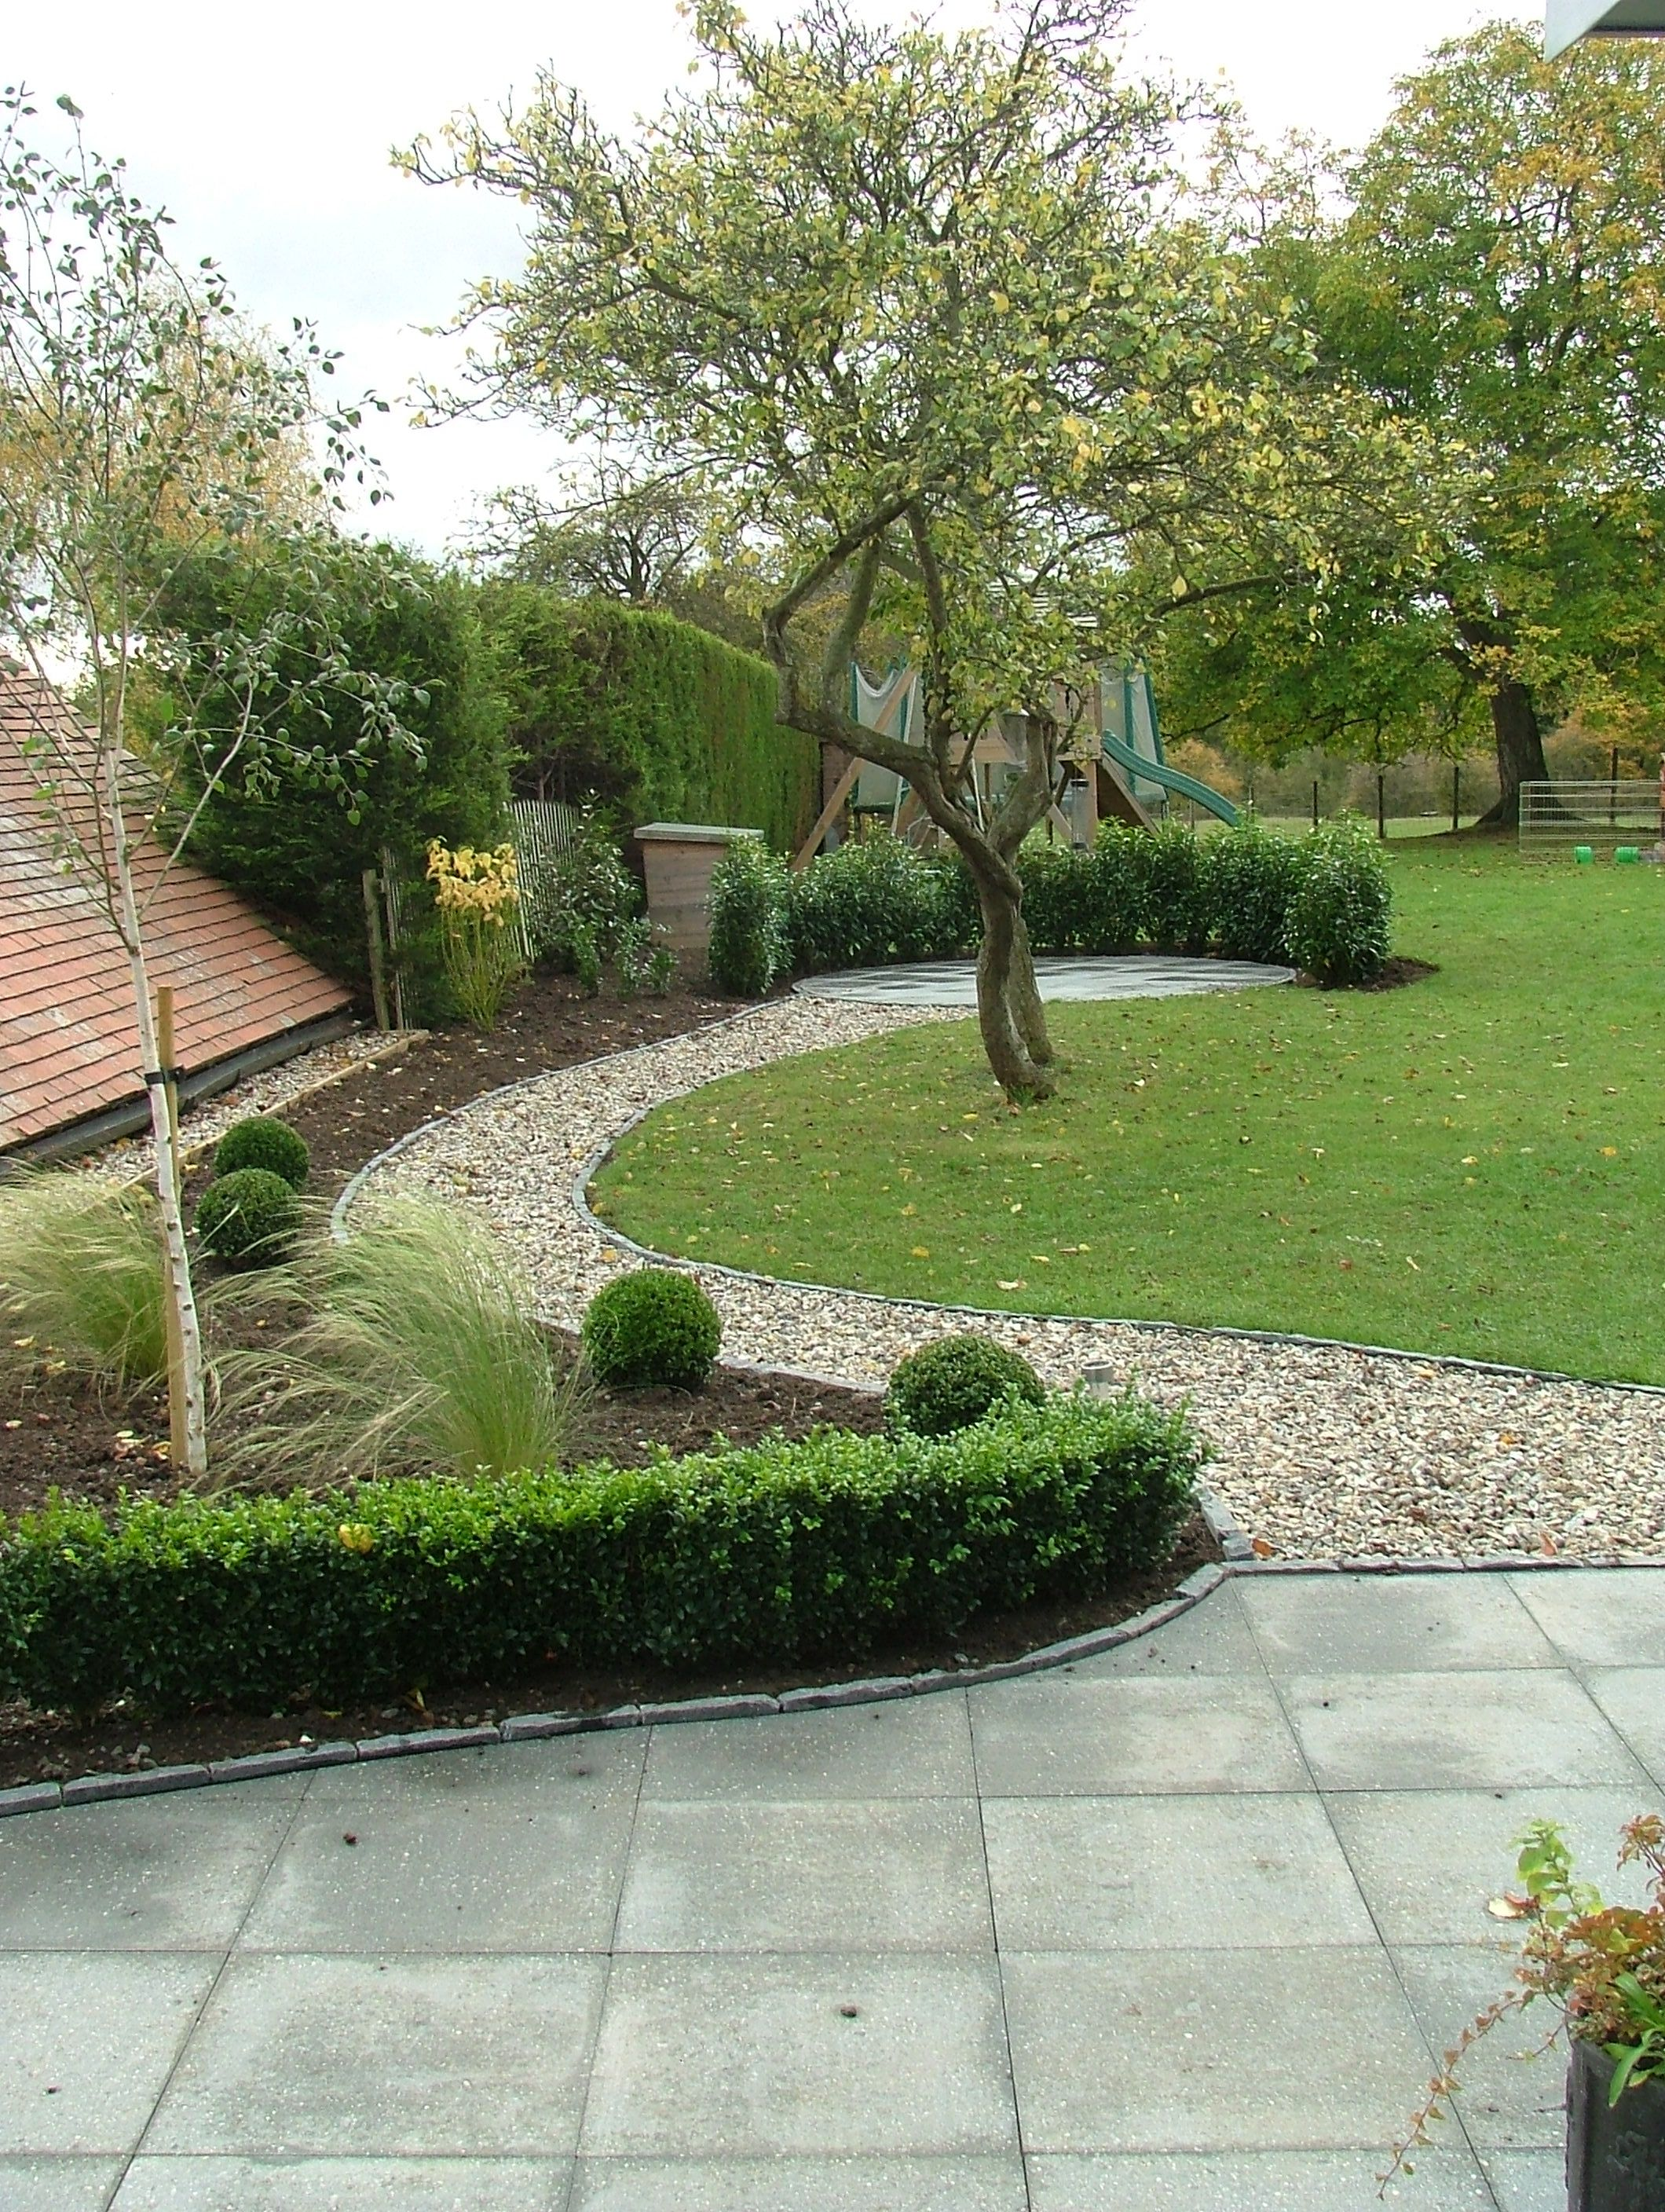 Latest News And Views Of Worcestershire Based Professional Garden Designer  Anne Guy.